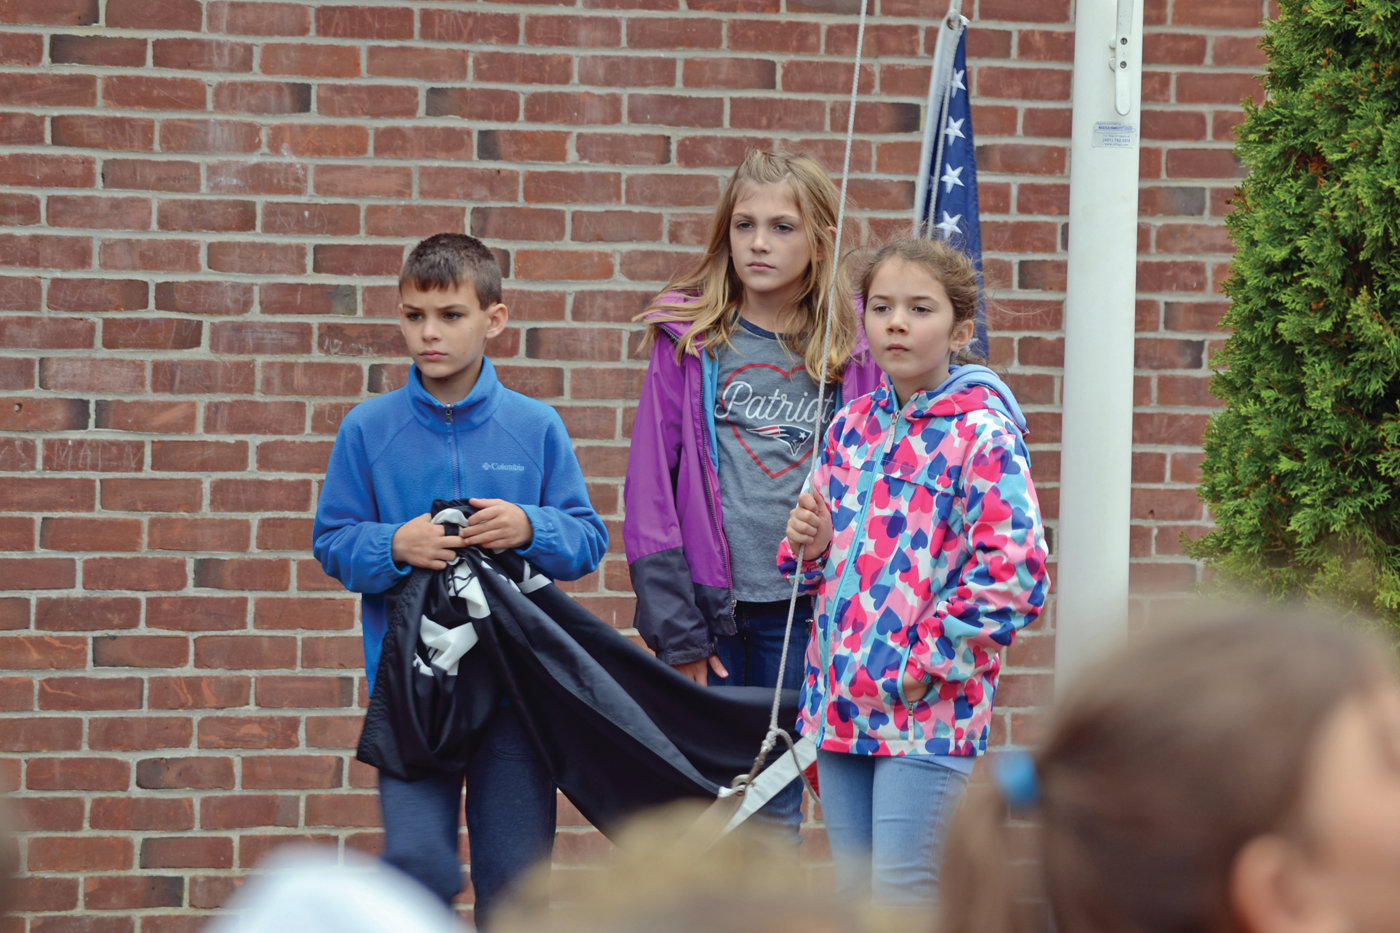 FLAG CREW: Aidan Flanagan, Madeline Scott and Lily Smiley were the students tasked with raising the flag to begin the day's ceremony.